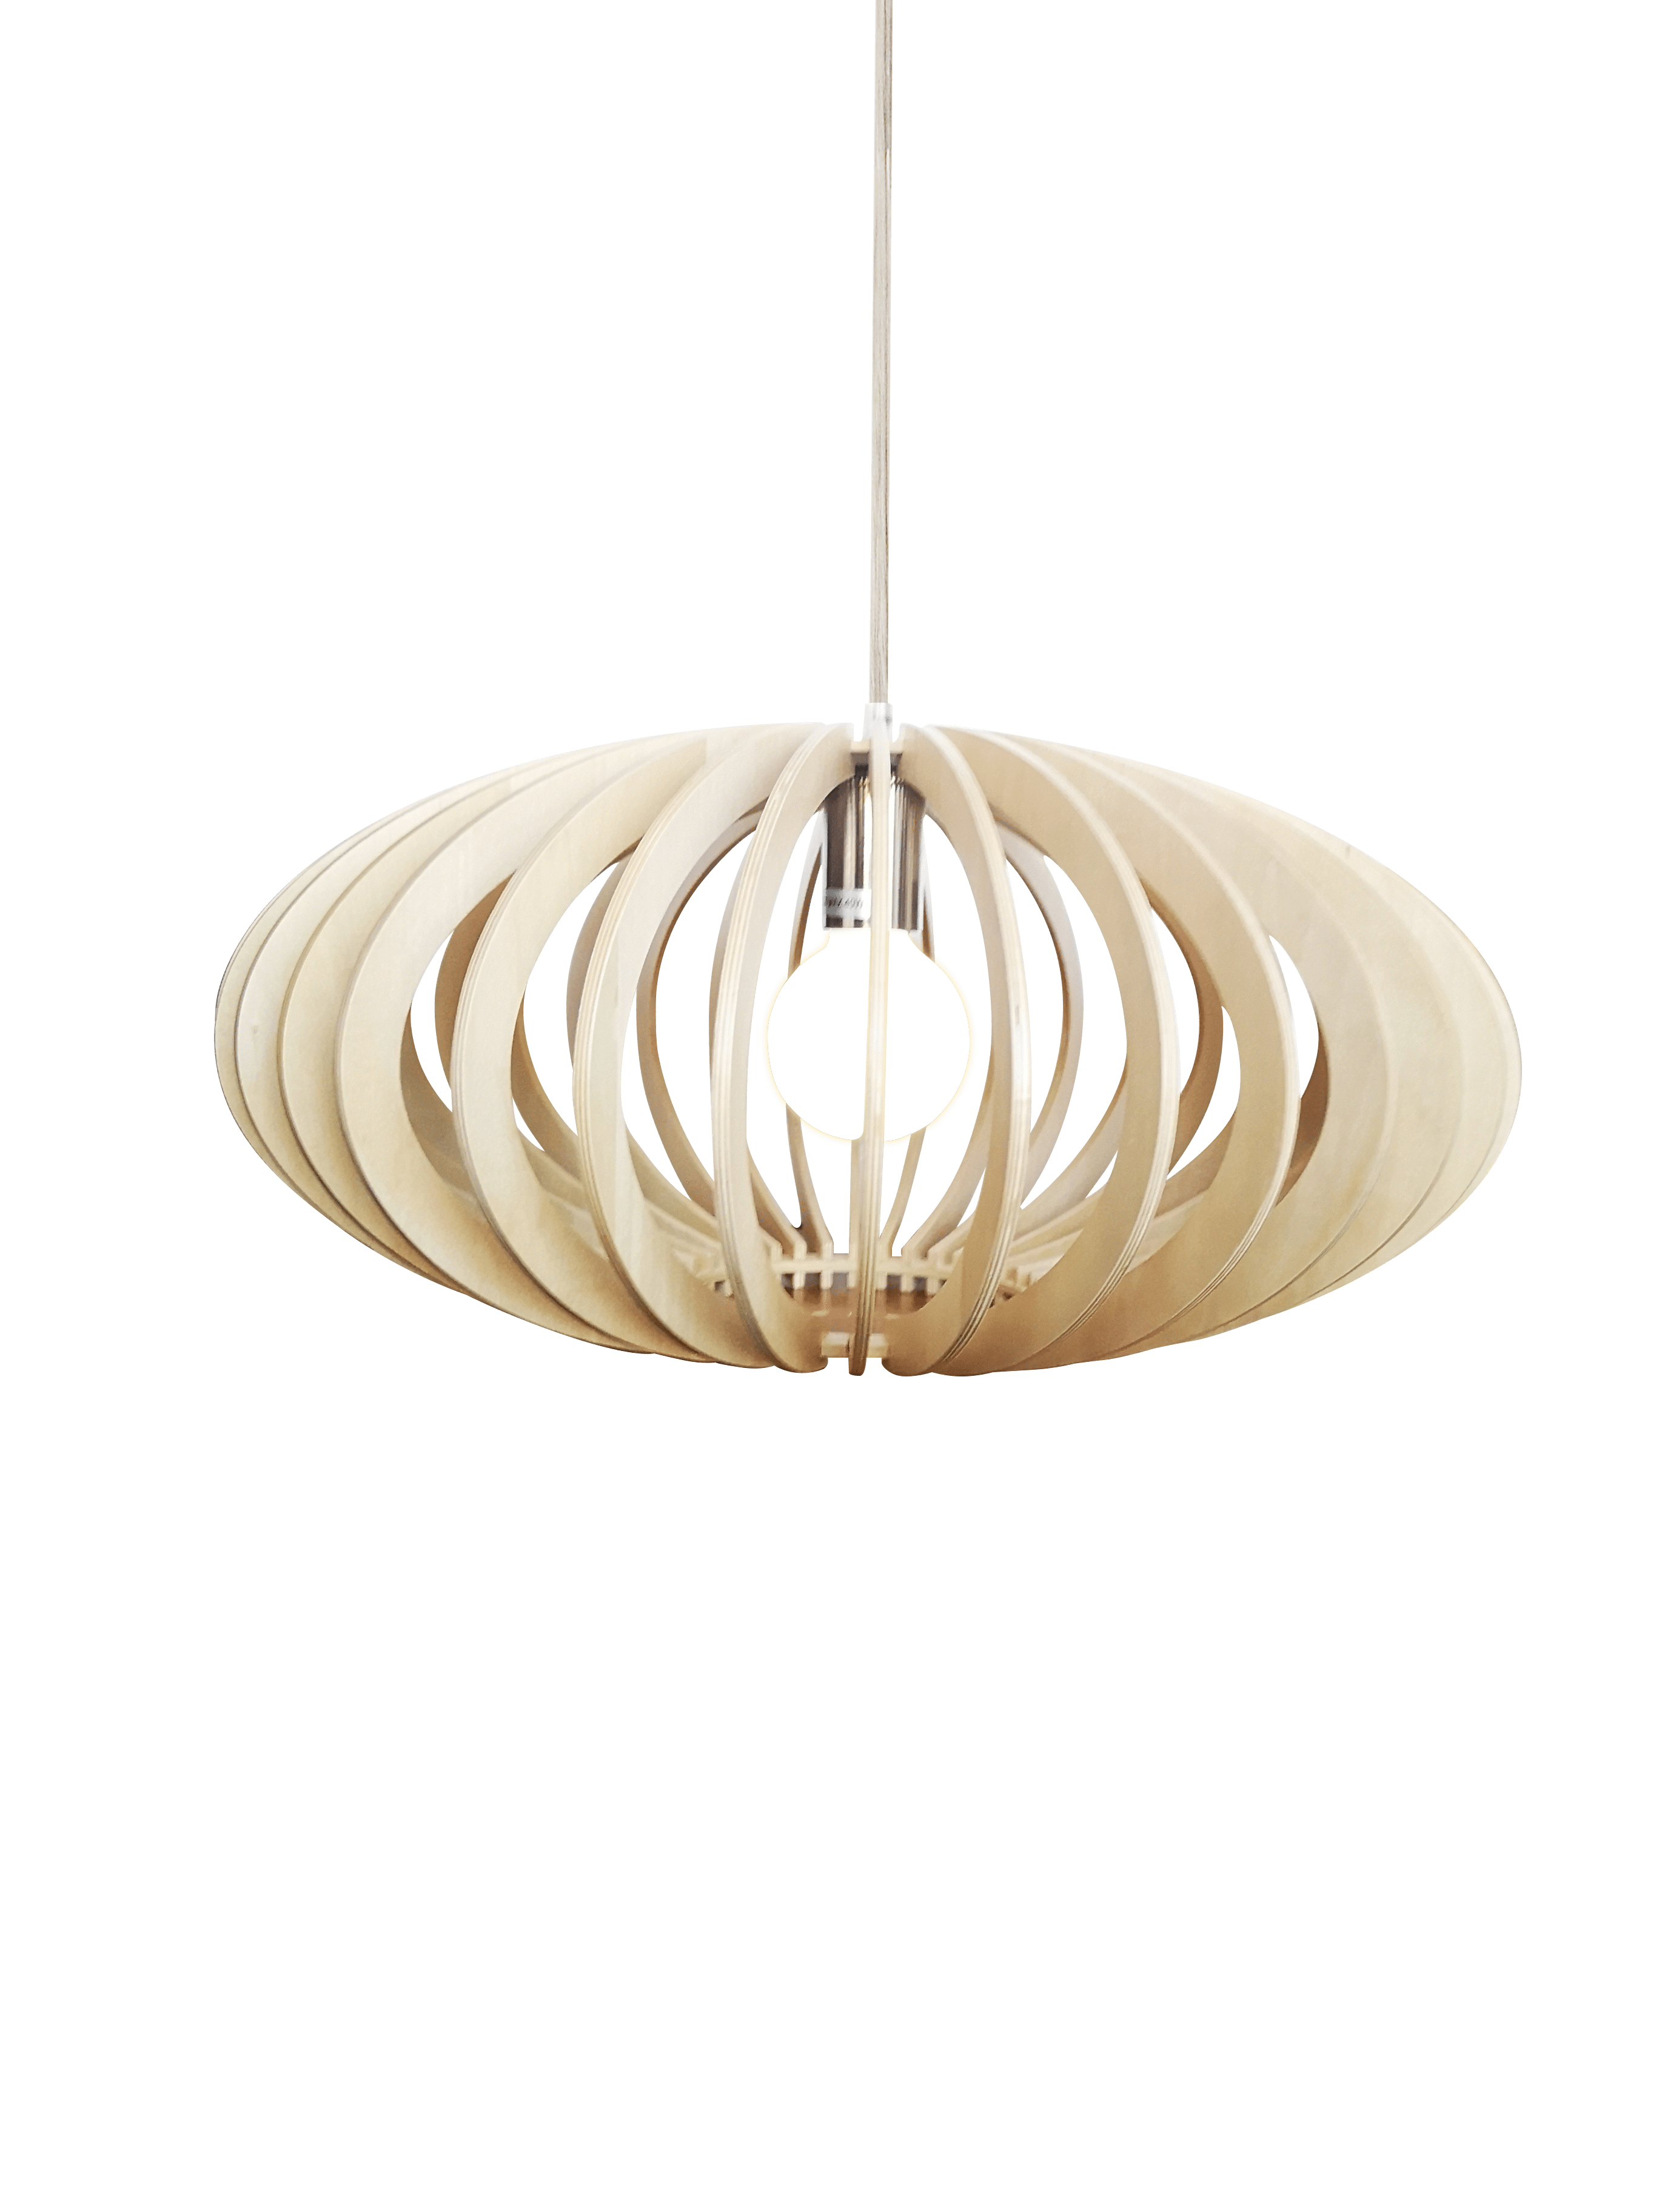 Curvato hanglamp - 48 cm - hout natuur